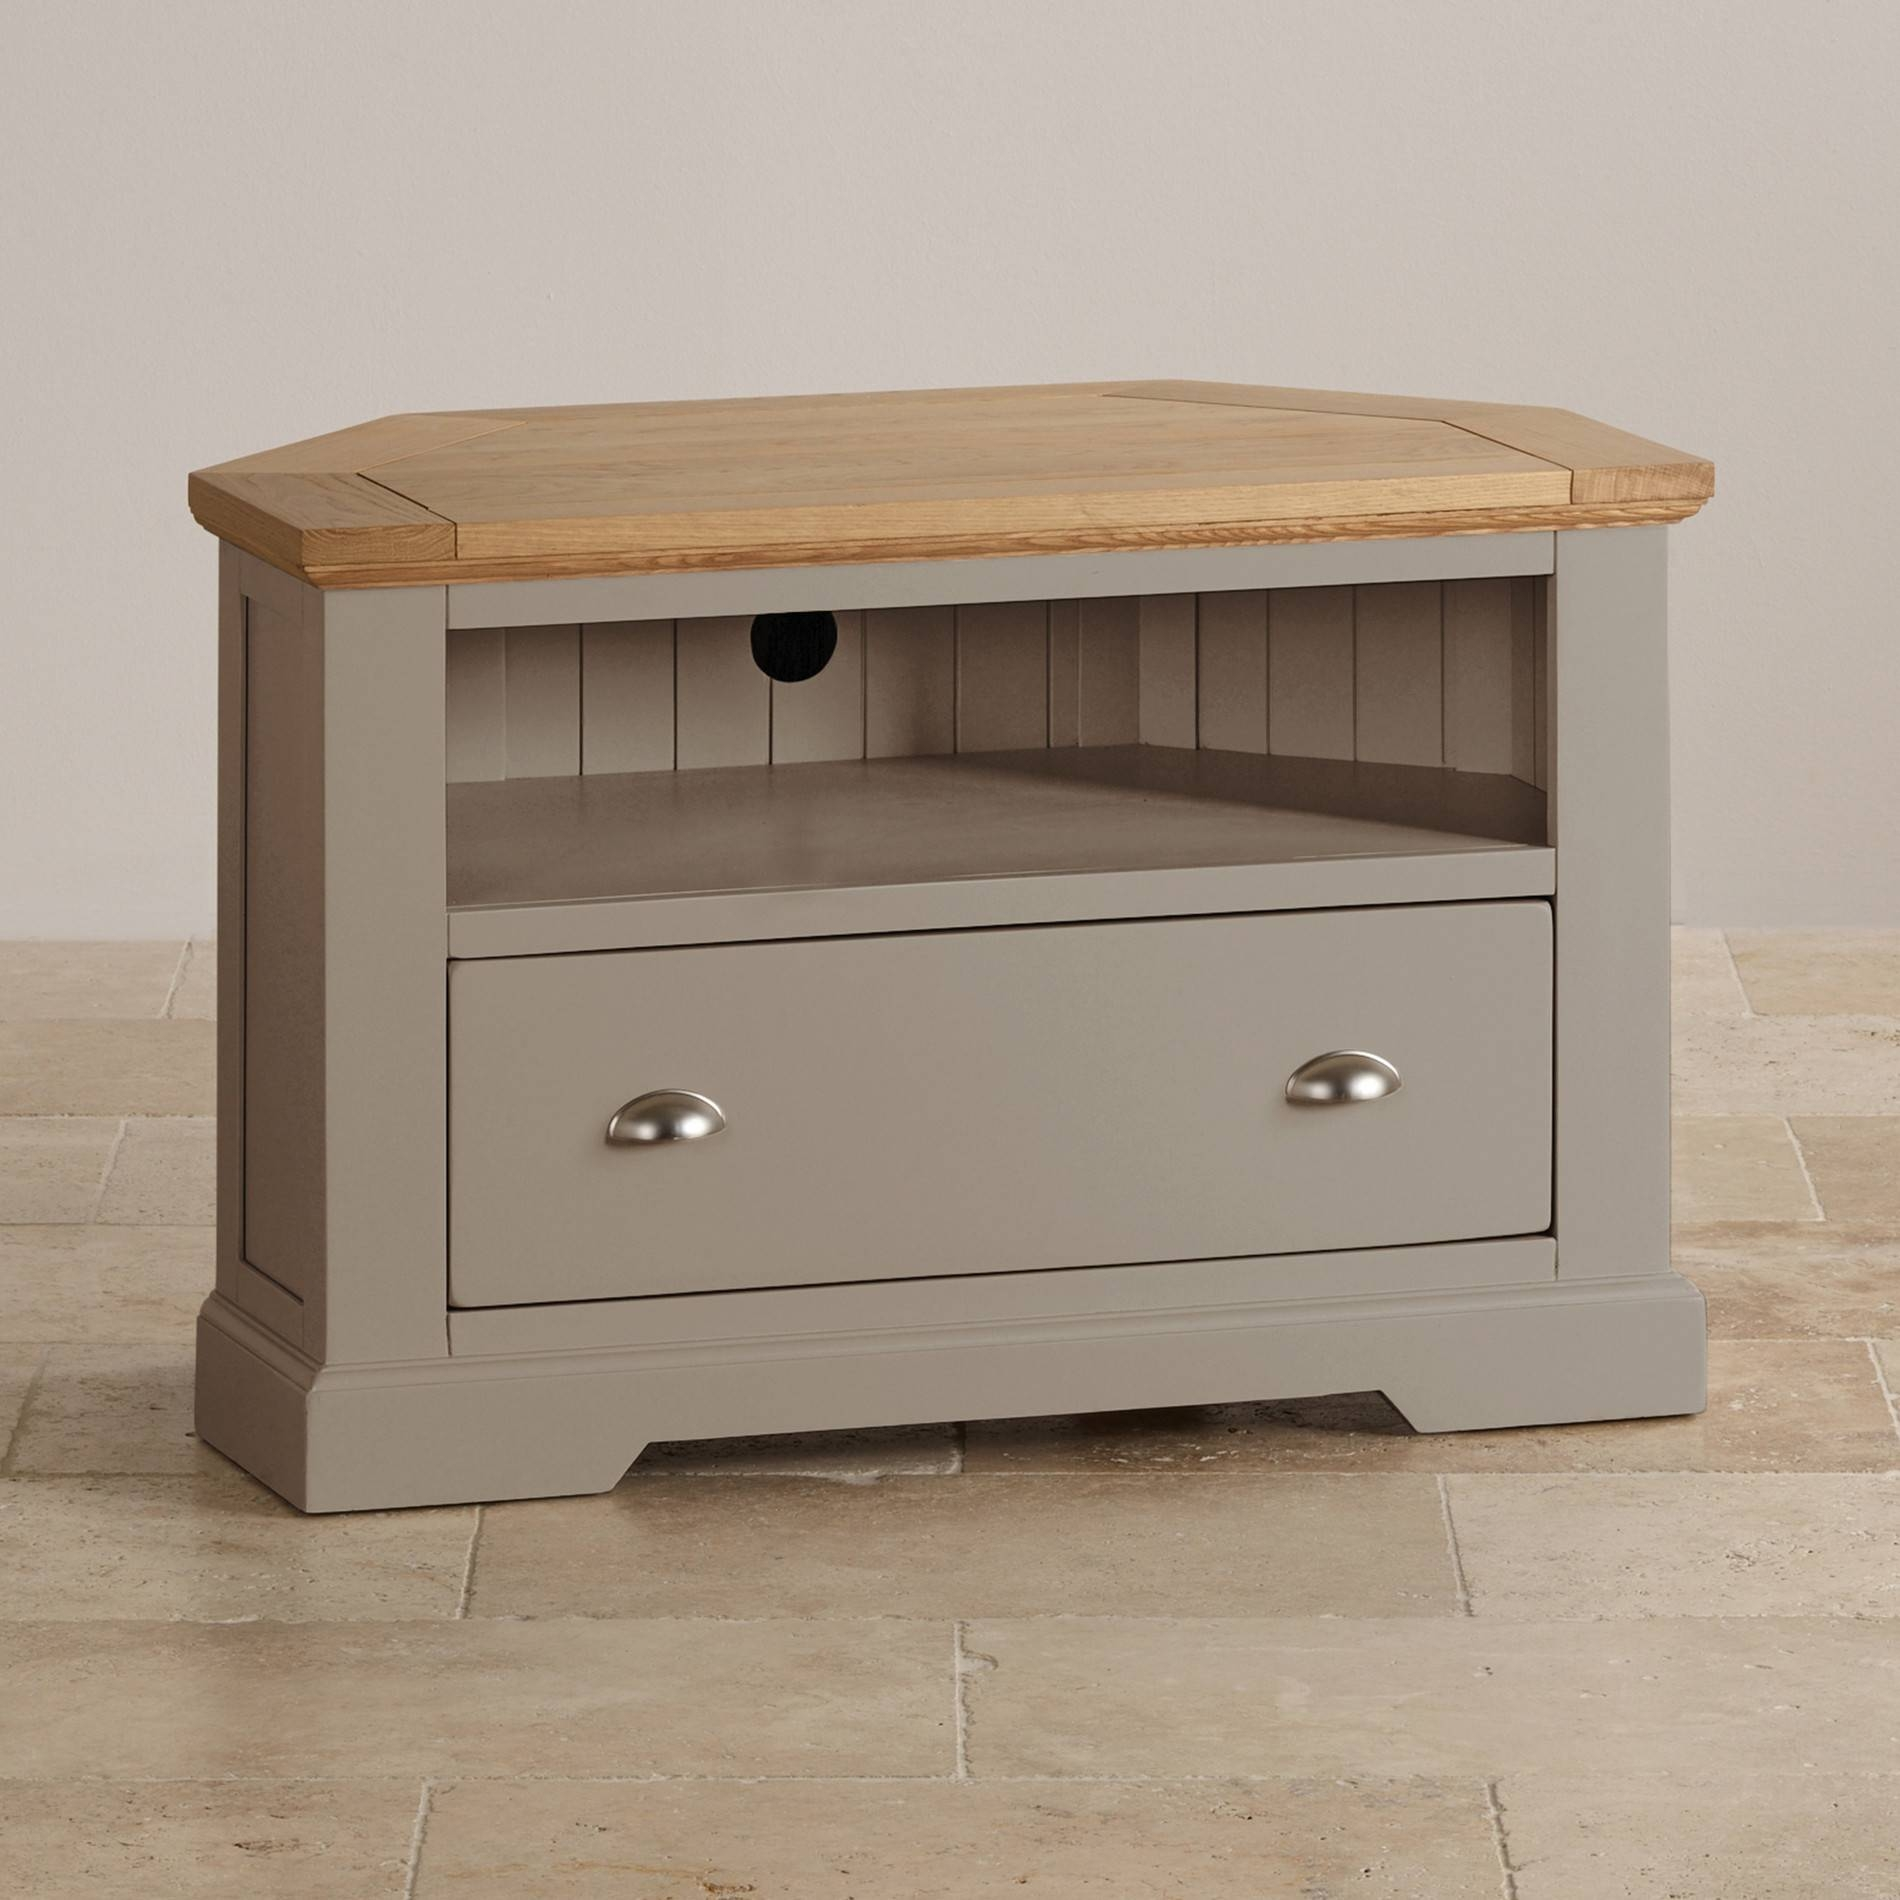 Tv Cabinets & Units | 100% Solid Oak | Oak Furniture Land throughout Oak Effect Corner Tv Stand (Image 9 of 15)